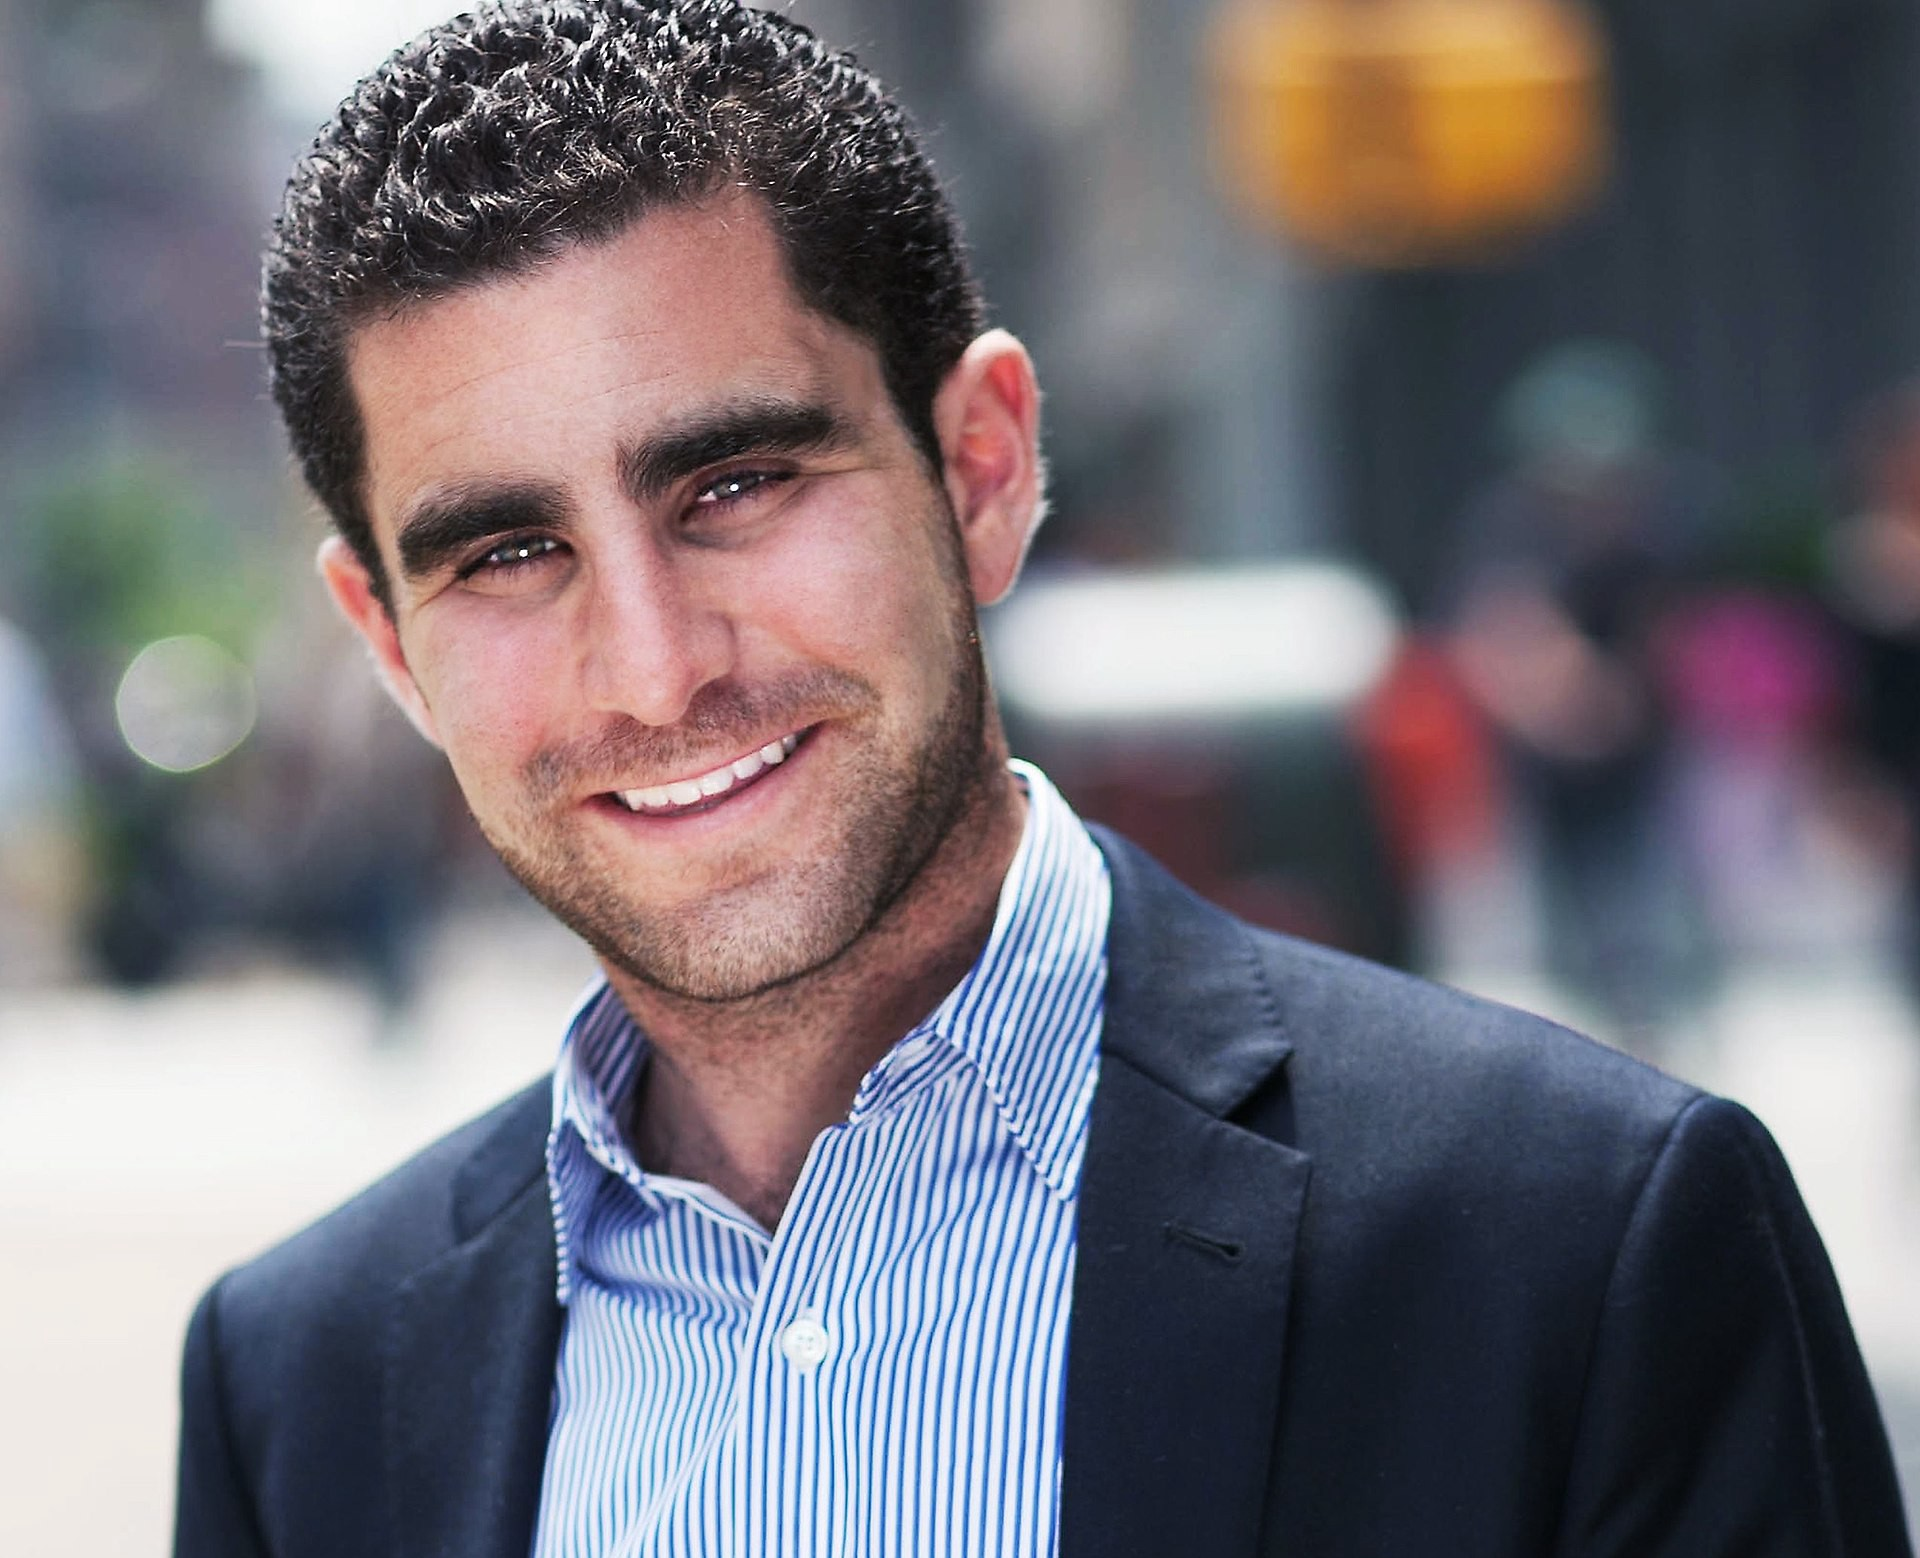 /charlie-shrem-a-bitcoin-story-from-riches-to-rags-6d51d2790388 feature image